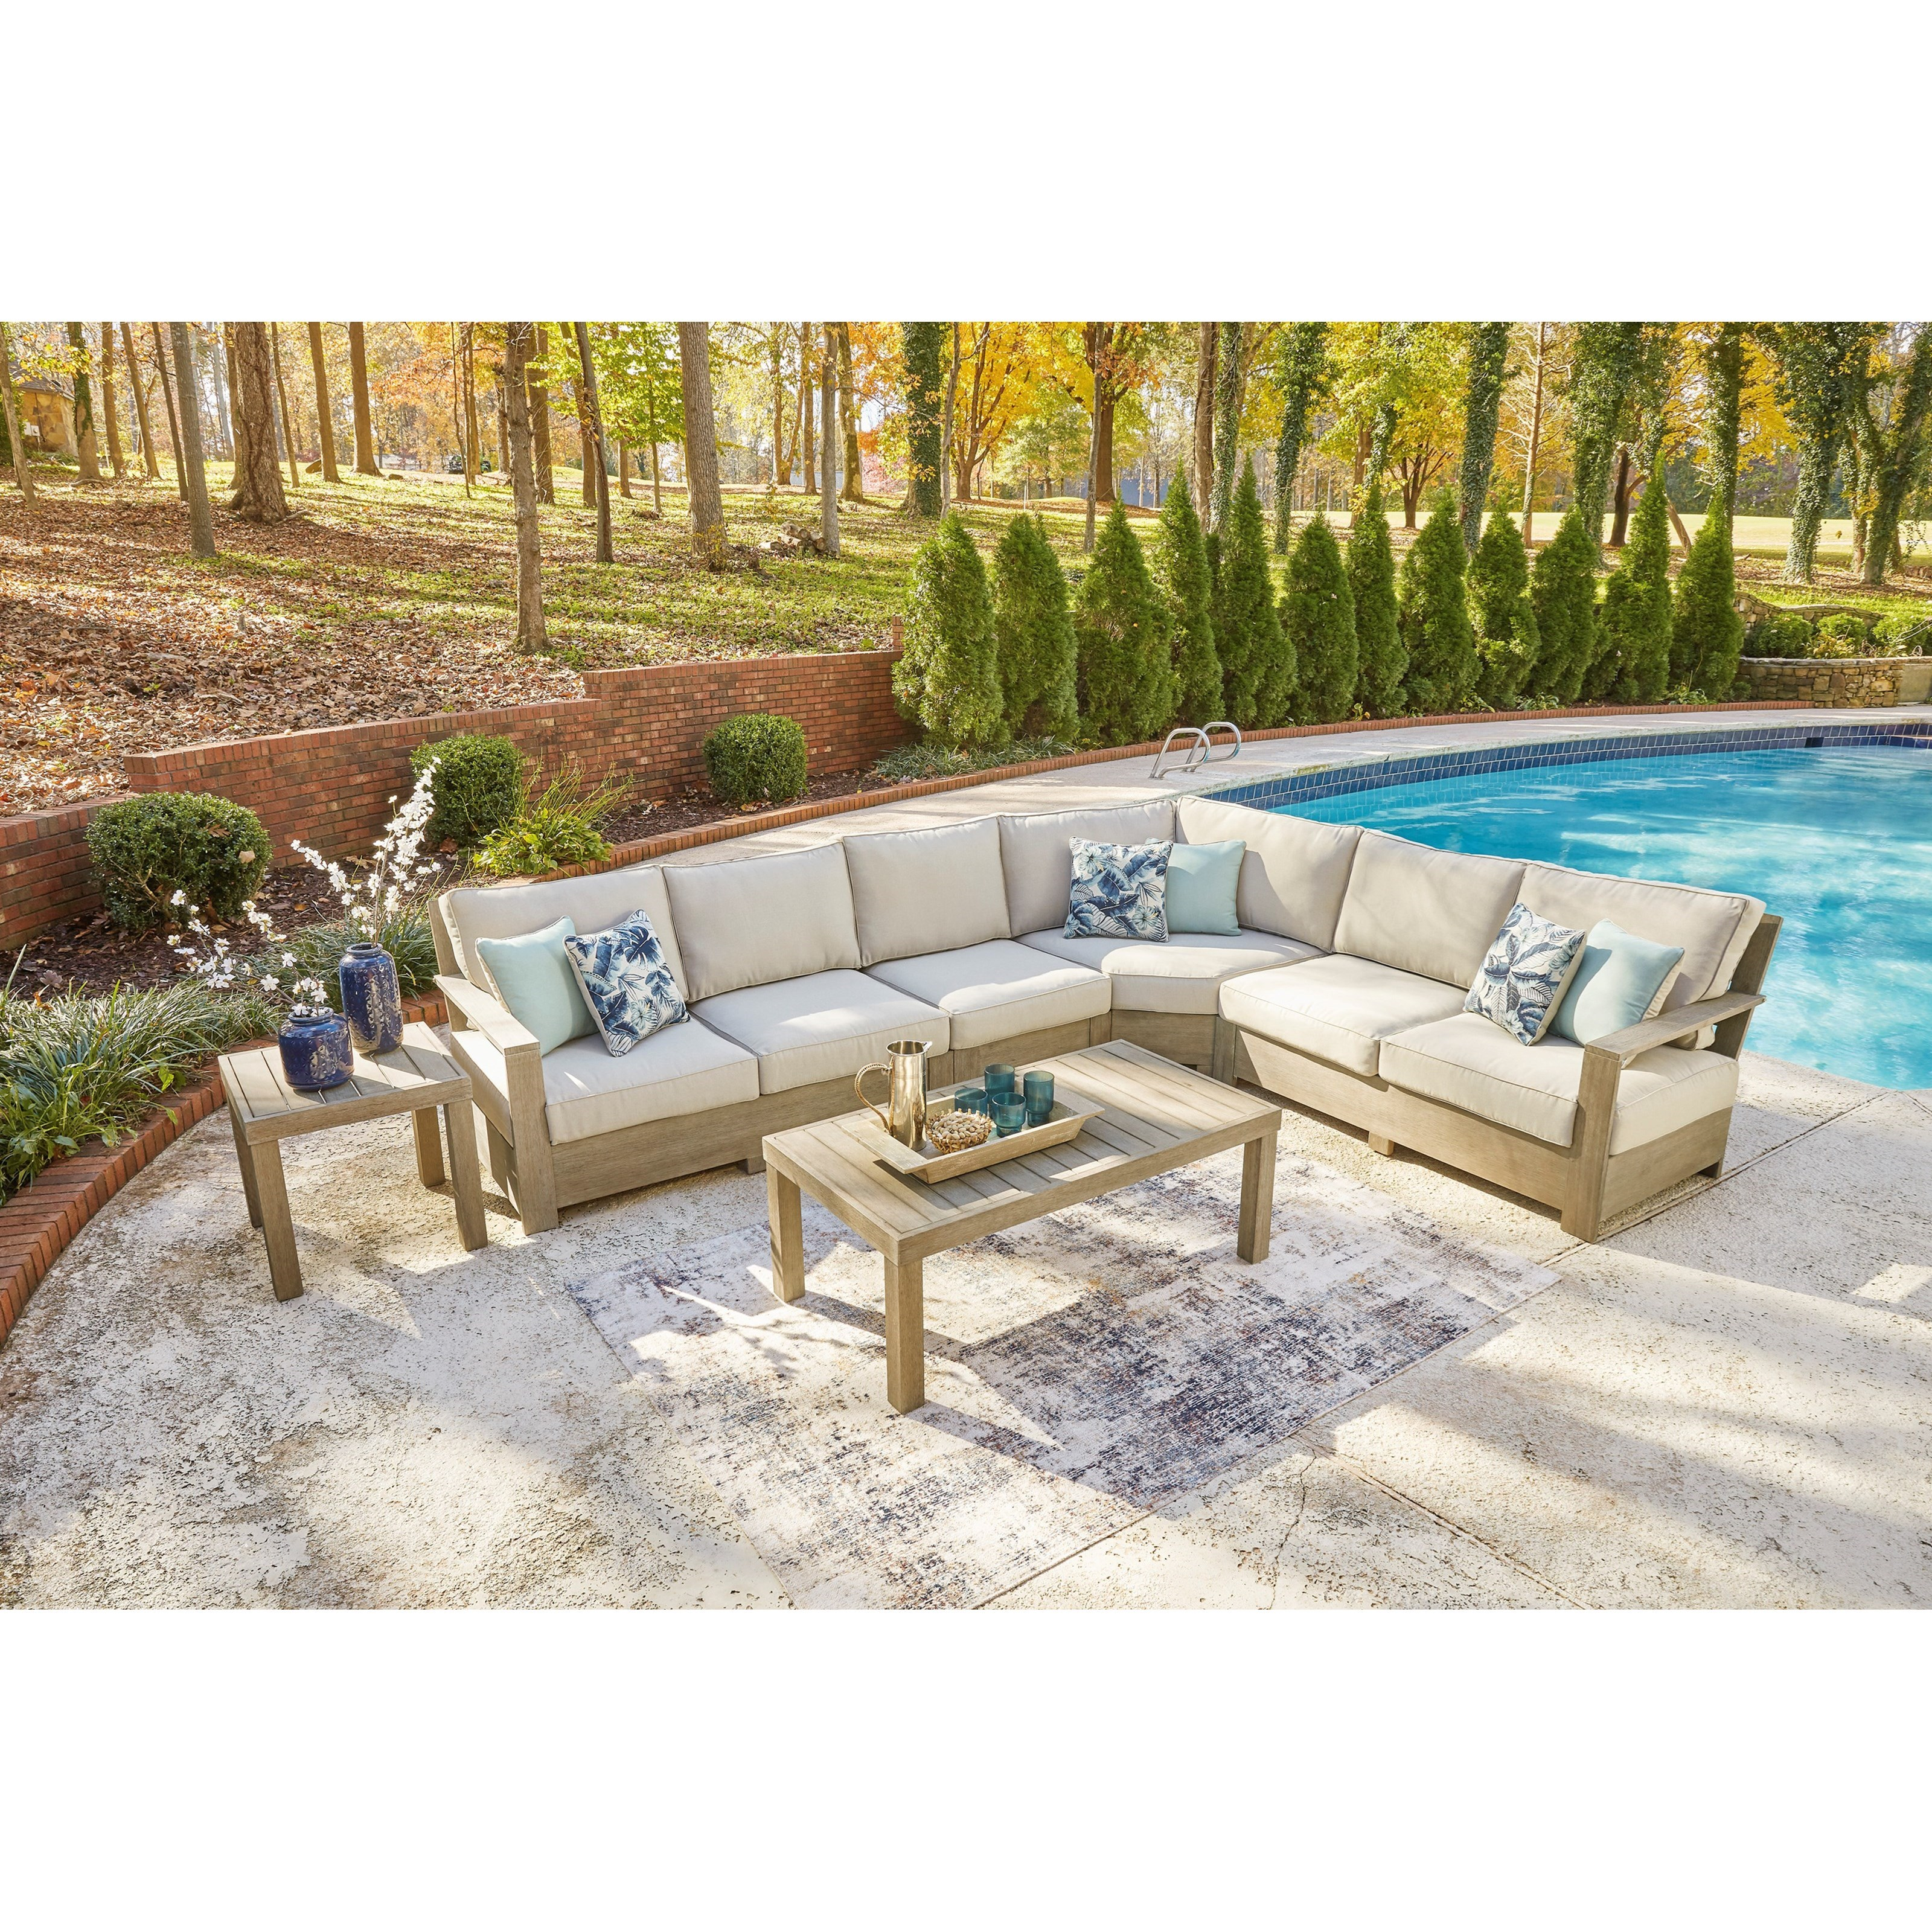 Silo Point Outdoor Sectional Set with Tables by Signature at Walker's Furniture